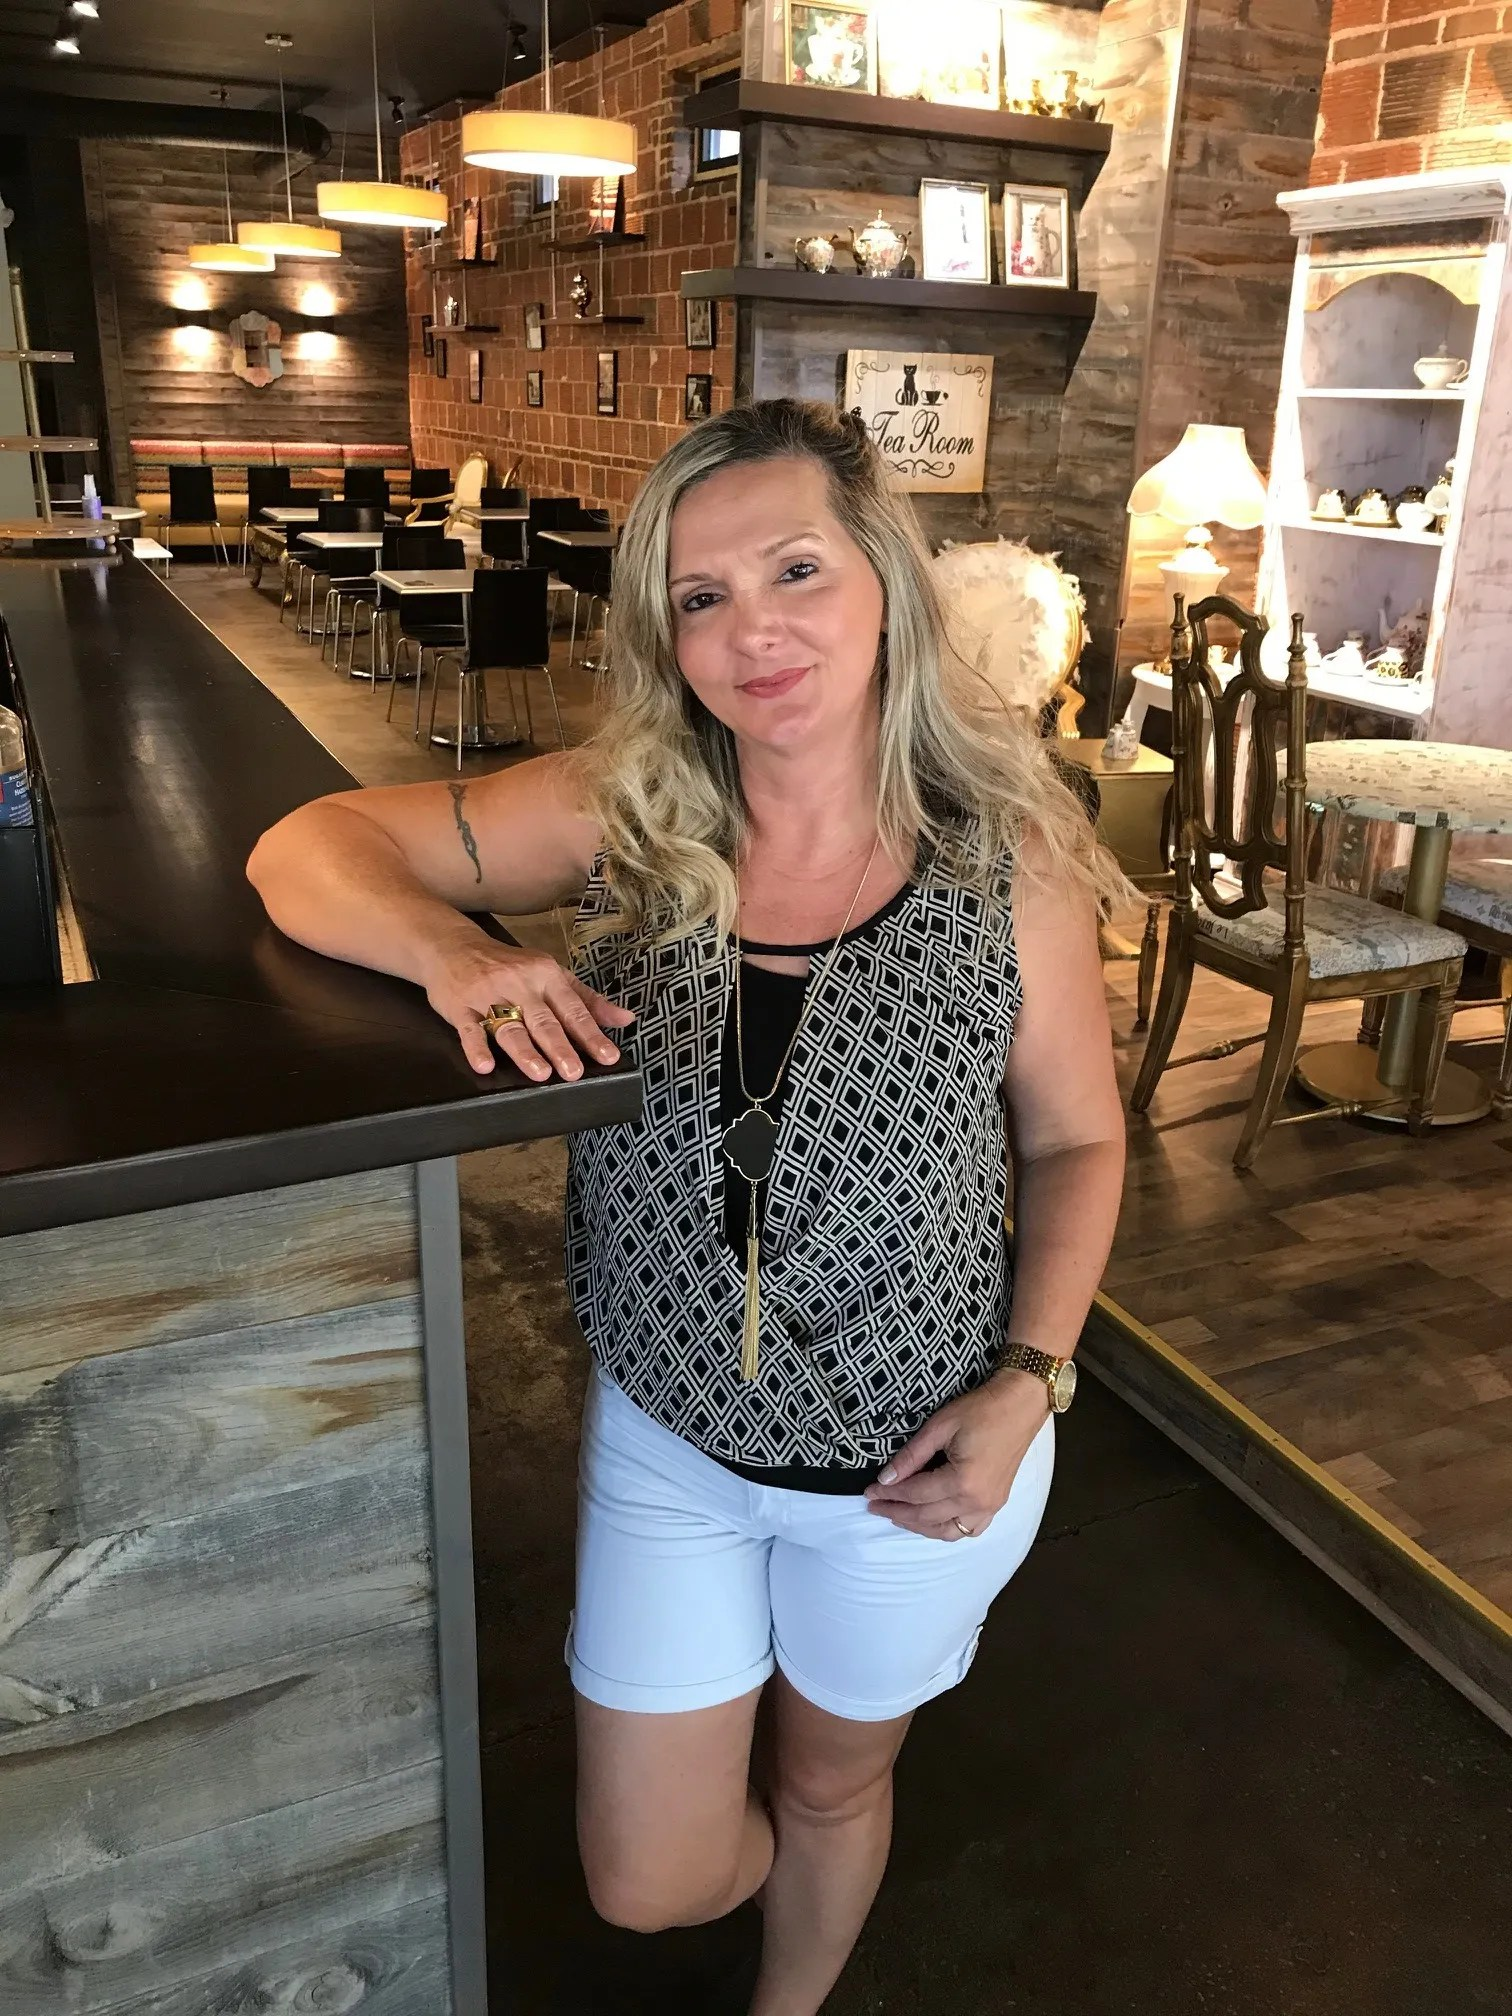 Sara Burton, co-owner of Crafty Cats Brewery Coffee & Tea, a new tea and coffee cafe and brewery concept opening in Greenville's West End district.